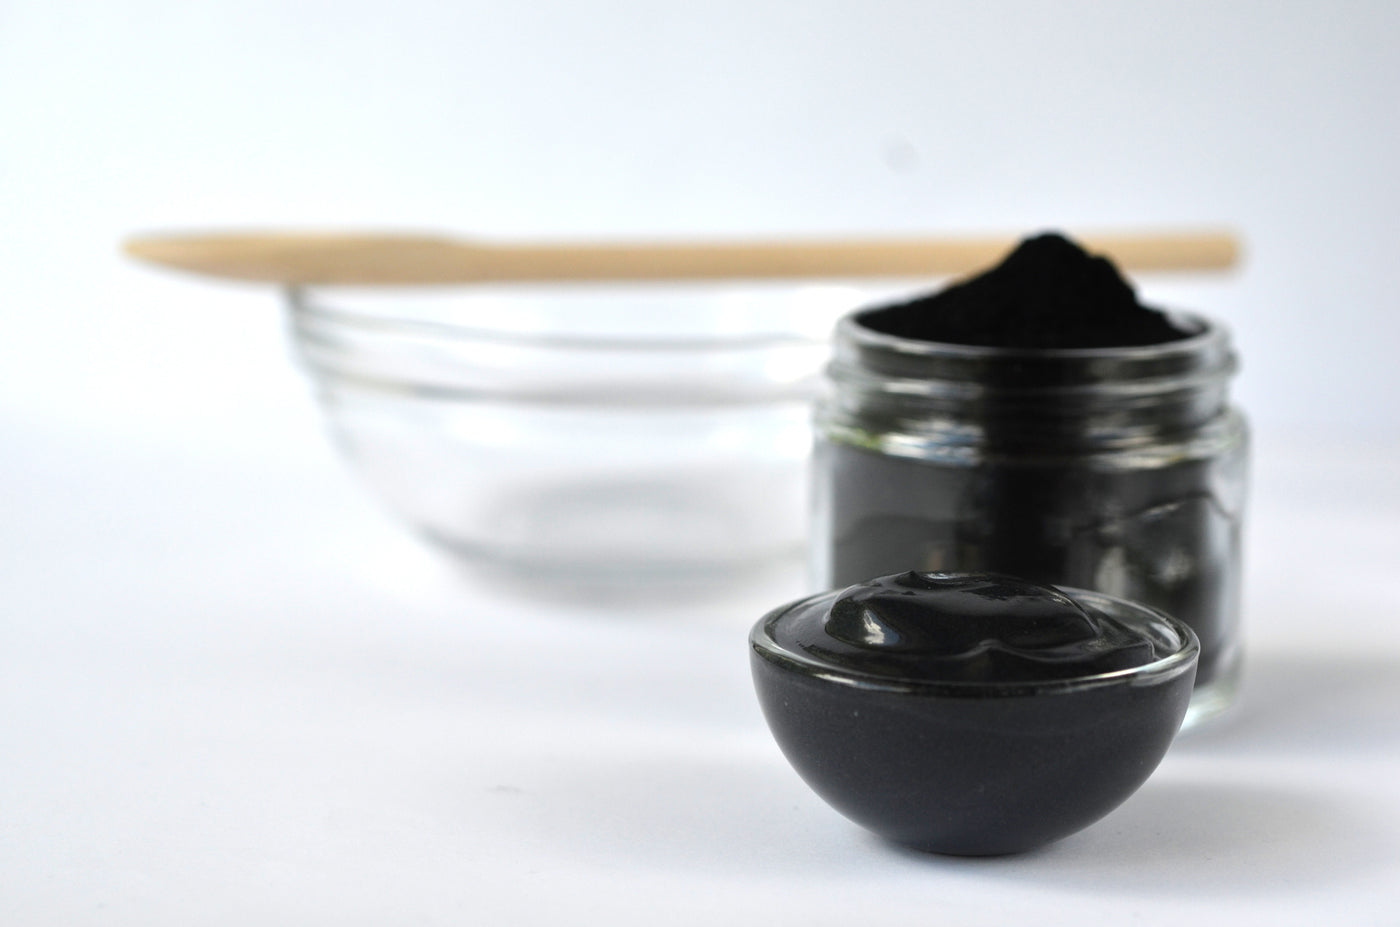 Thinking of Drinking Activated Charcoal? Let's Talk About Detox.